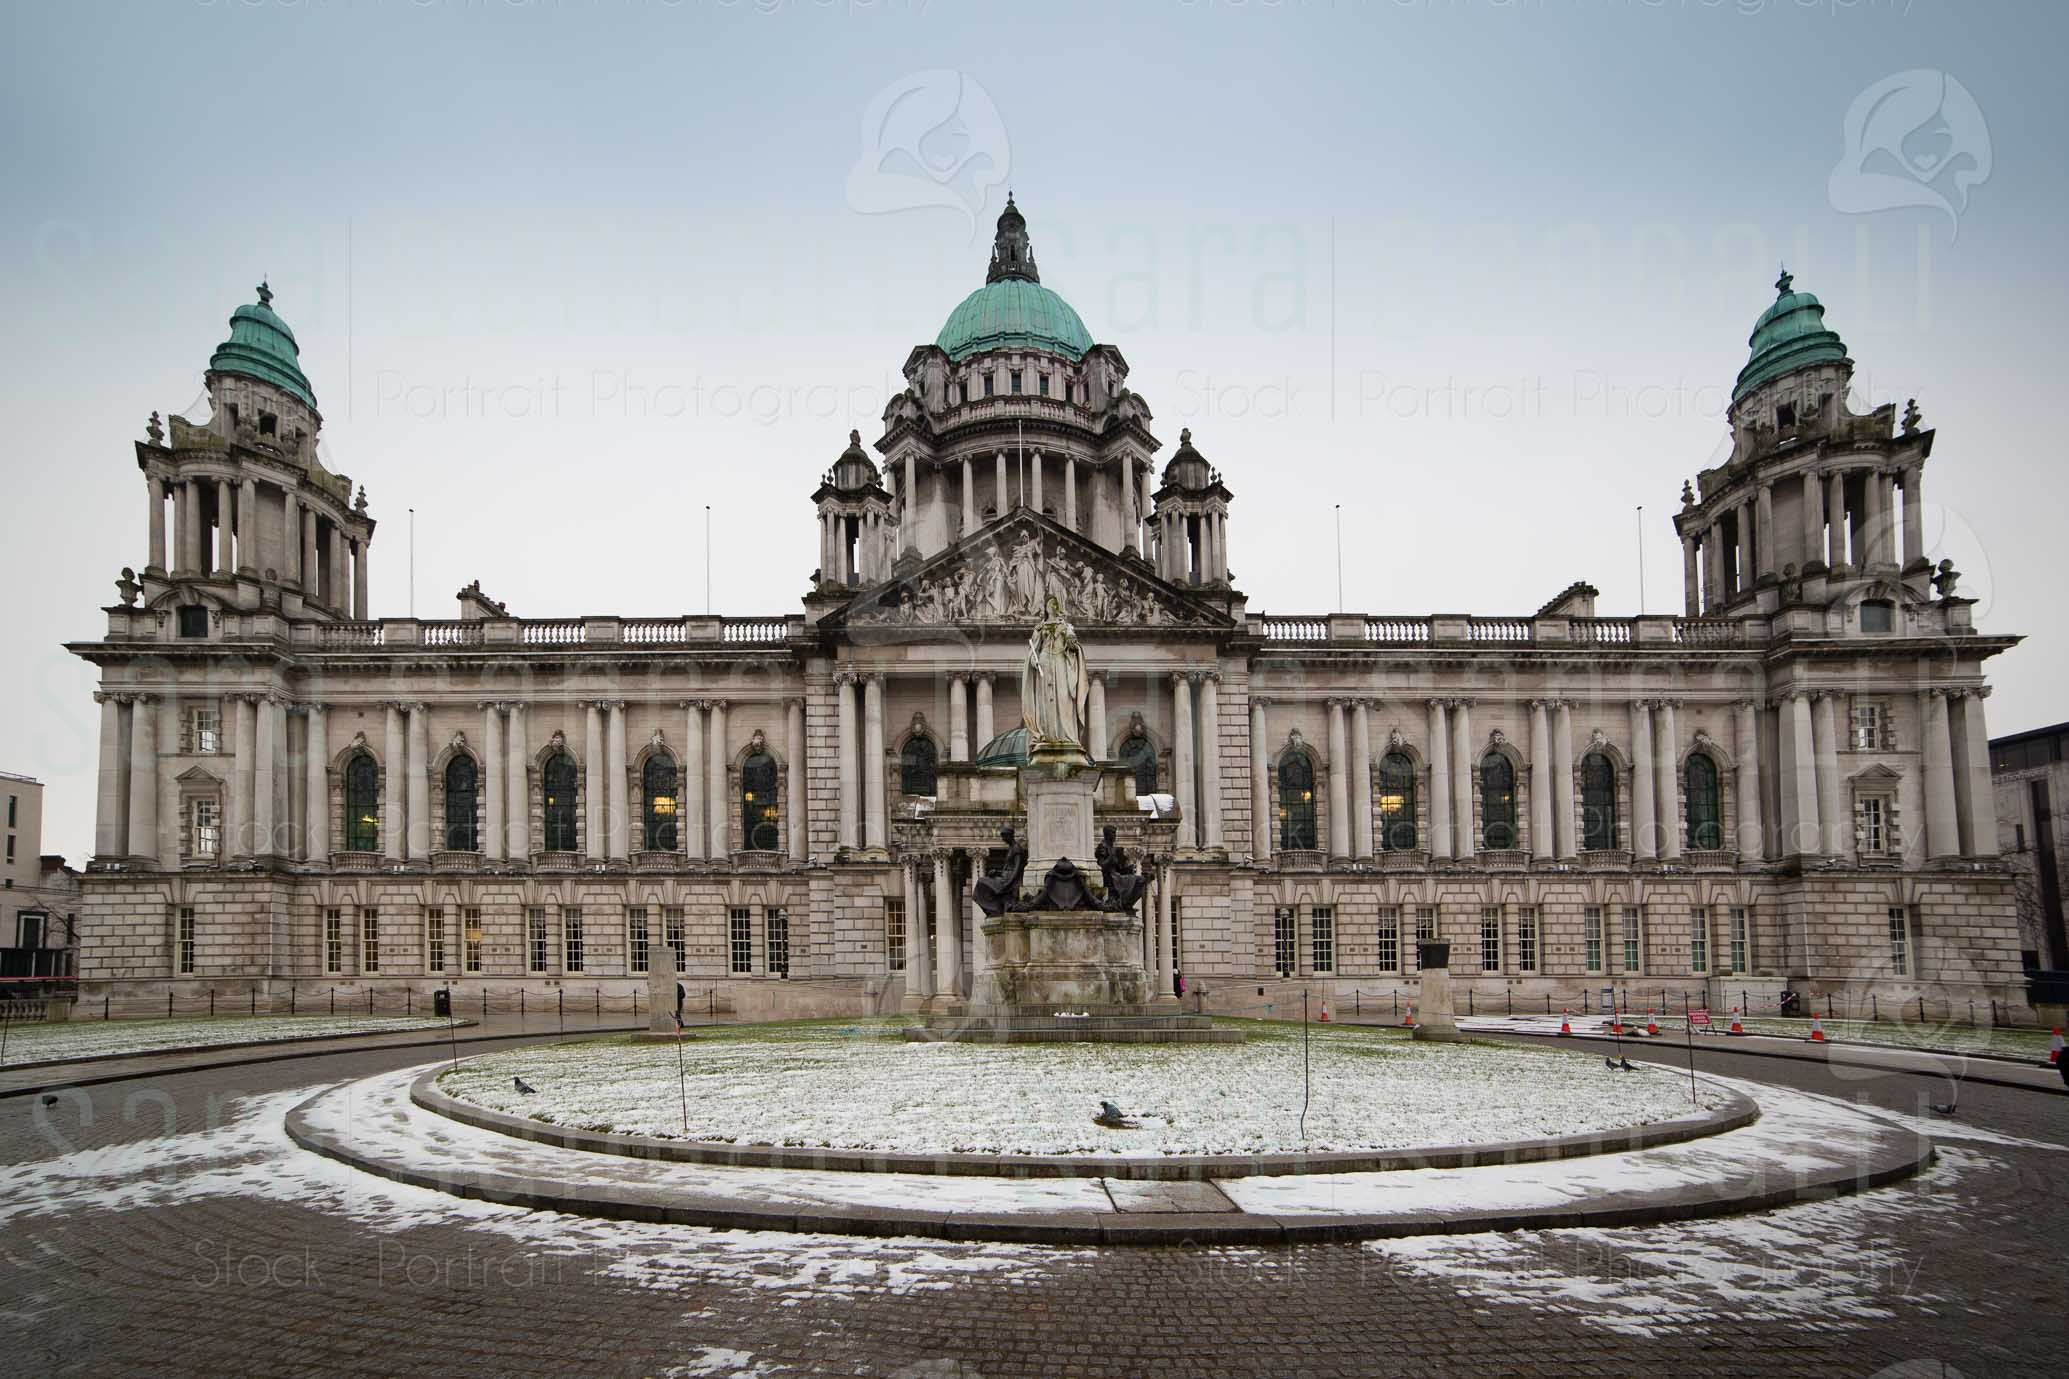 Belfast City Hall fronta facade during winter time